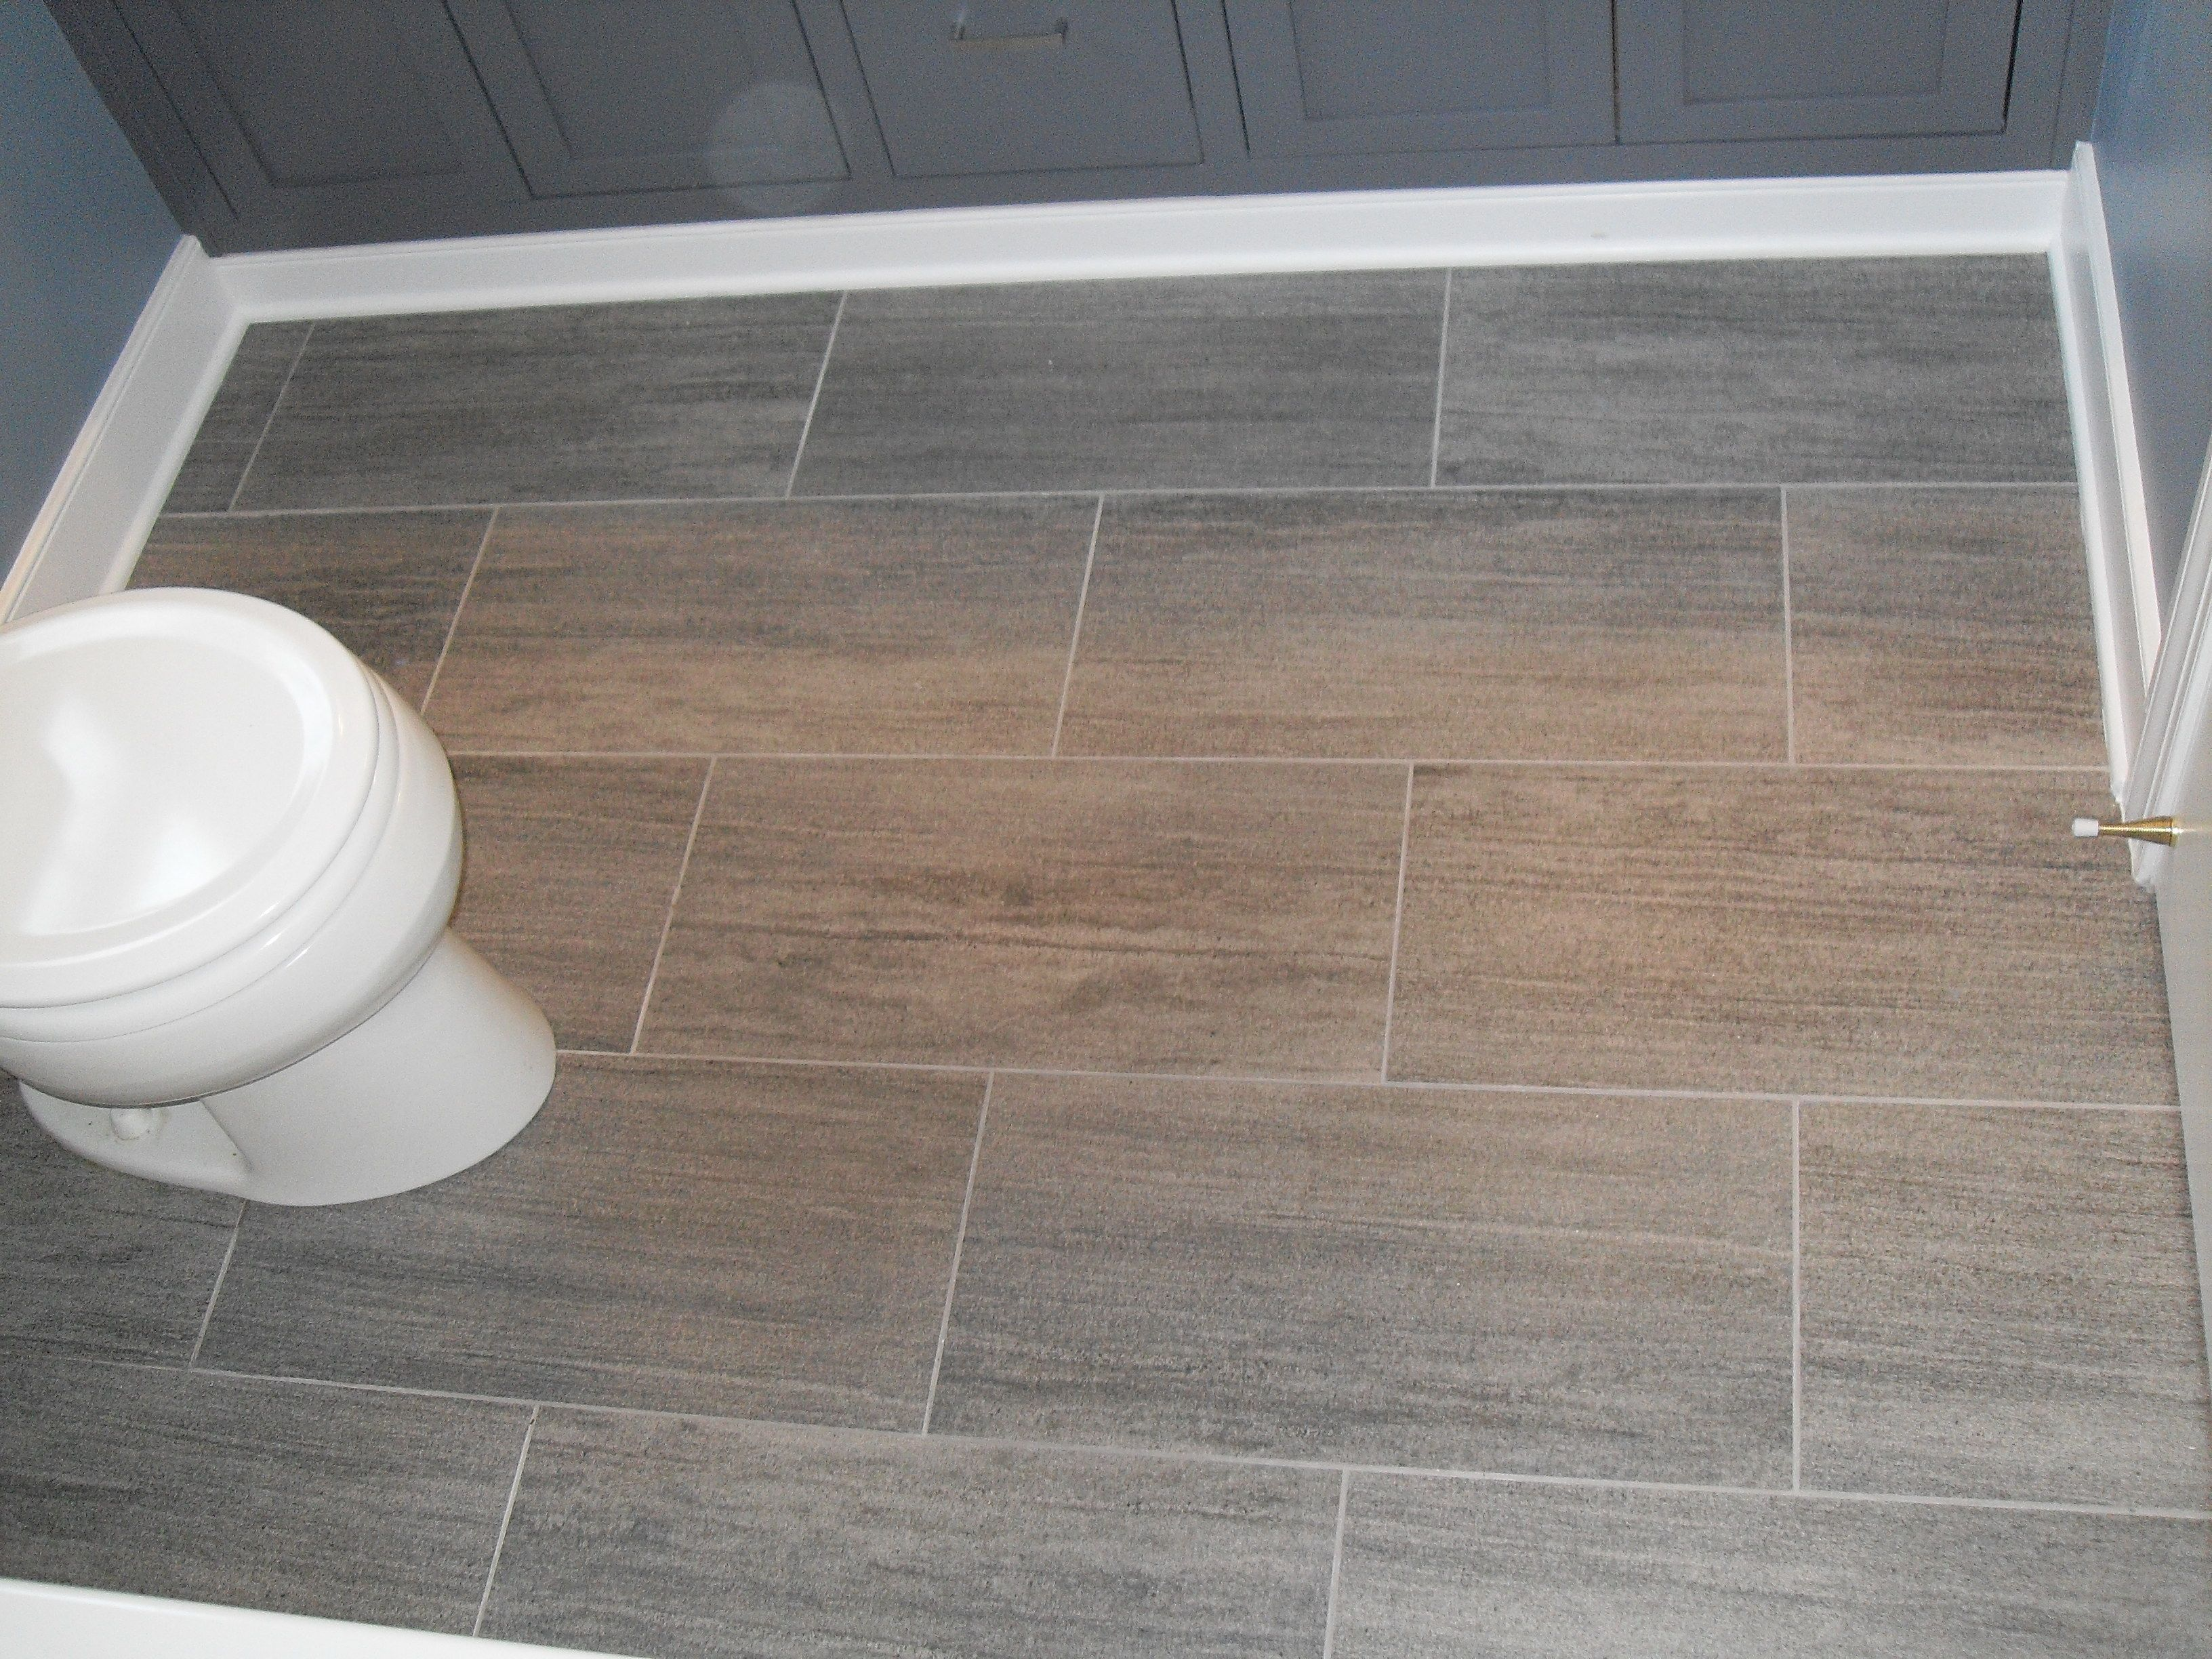 Easy To Keep Clean Similar Drift Wood In Tone Large Tile For Fast Installation What Is Not Love